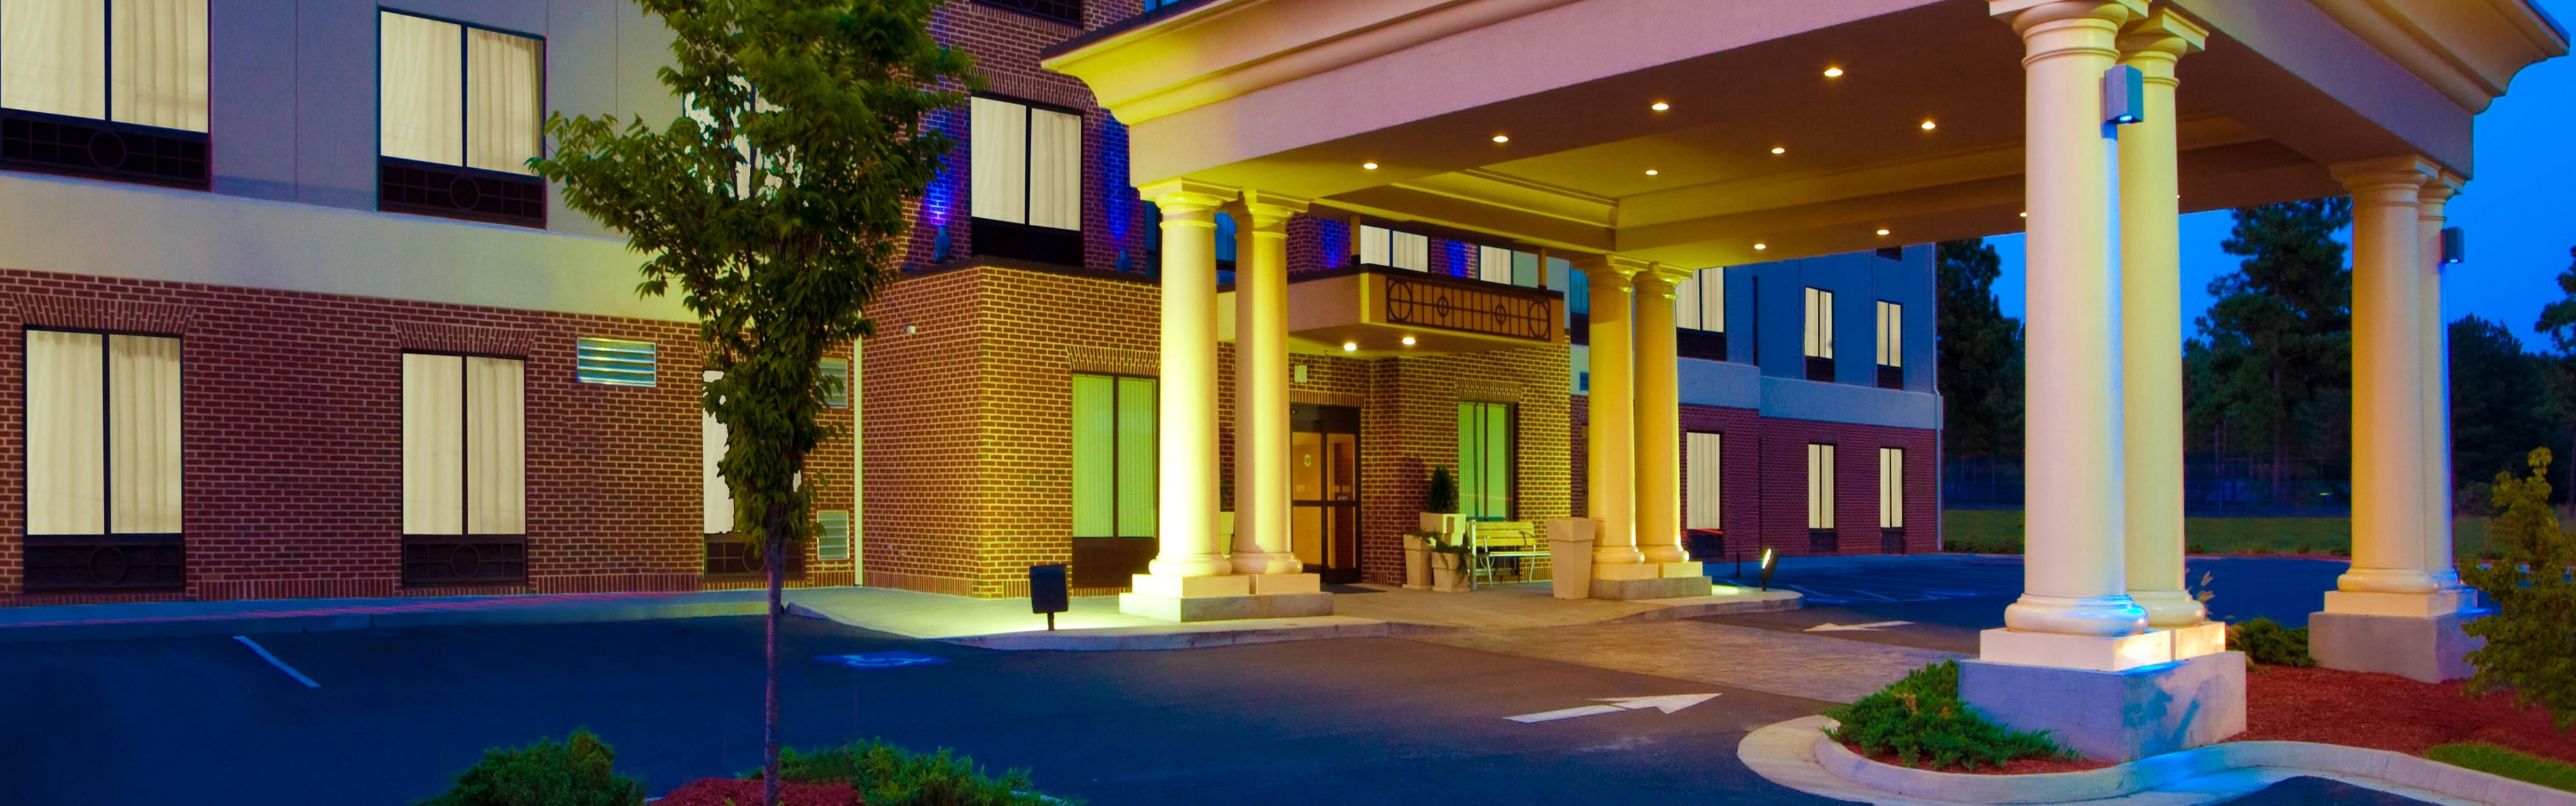 Holiday Inn Express & Suites Tappahannock image 0